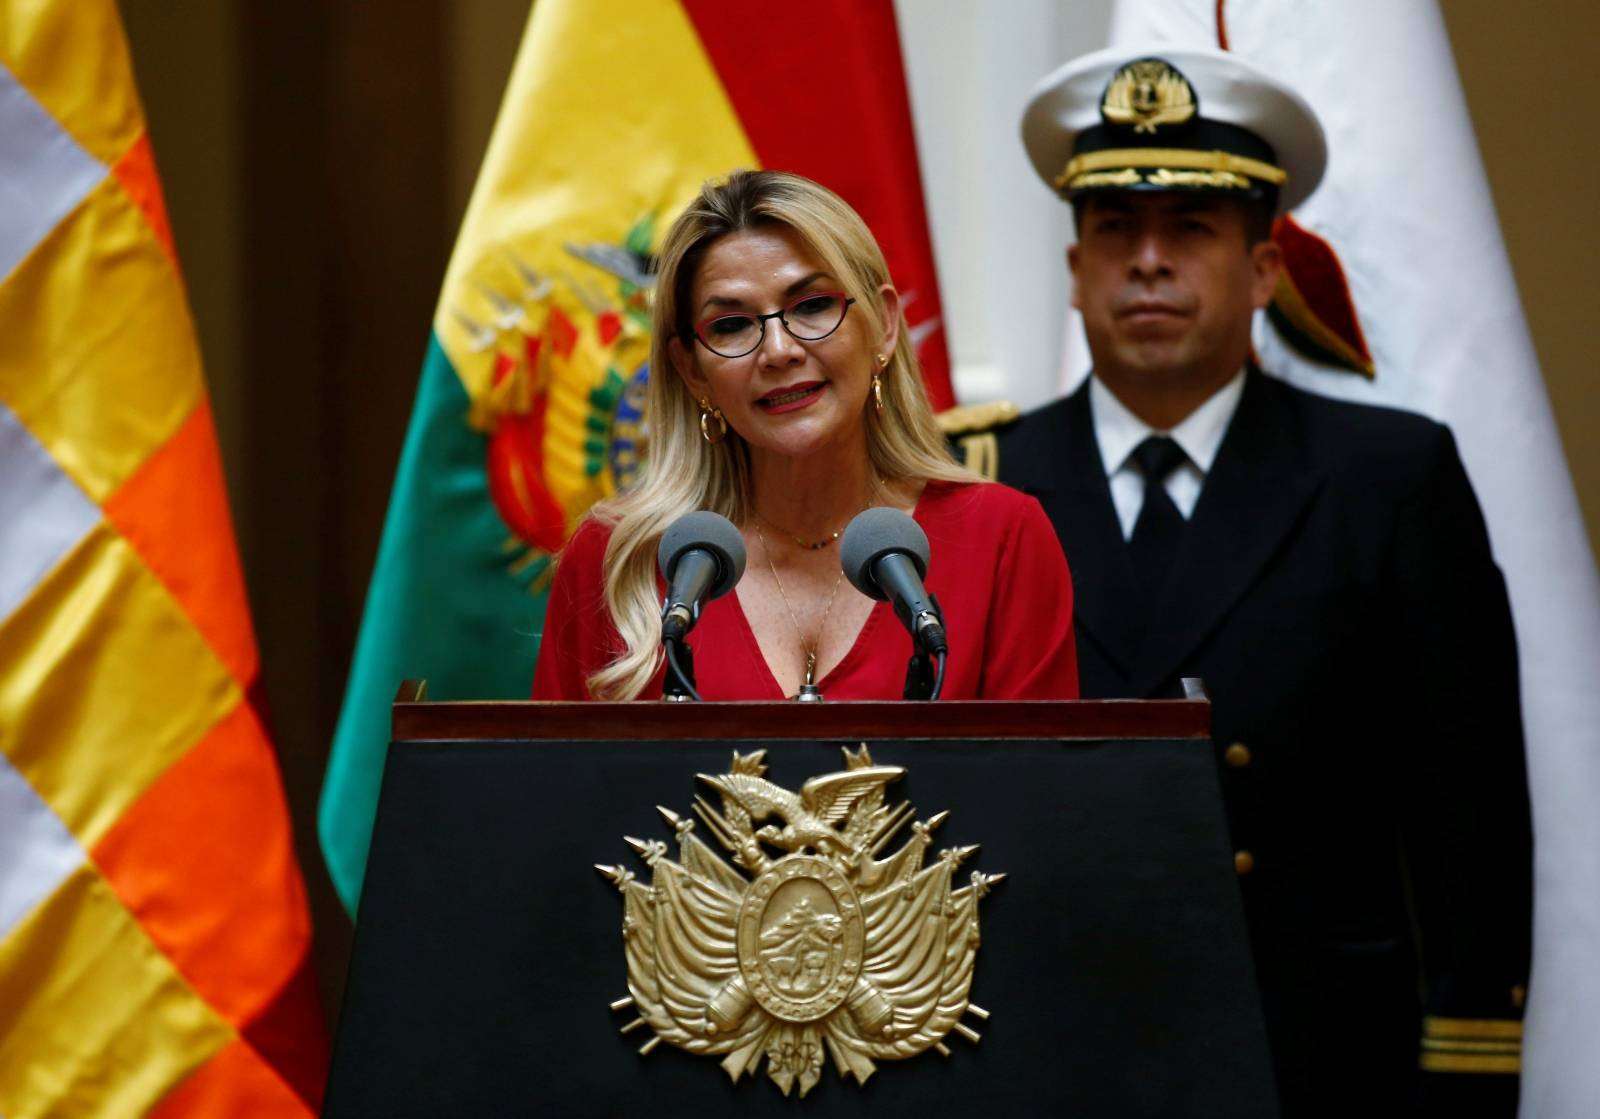 Bolivia's interim president Jeanine Anez speaks during a ceremony at the presidential palace in La Paz